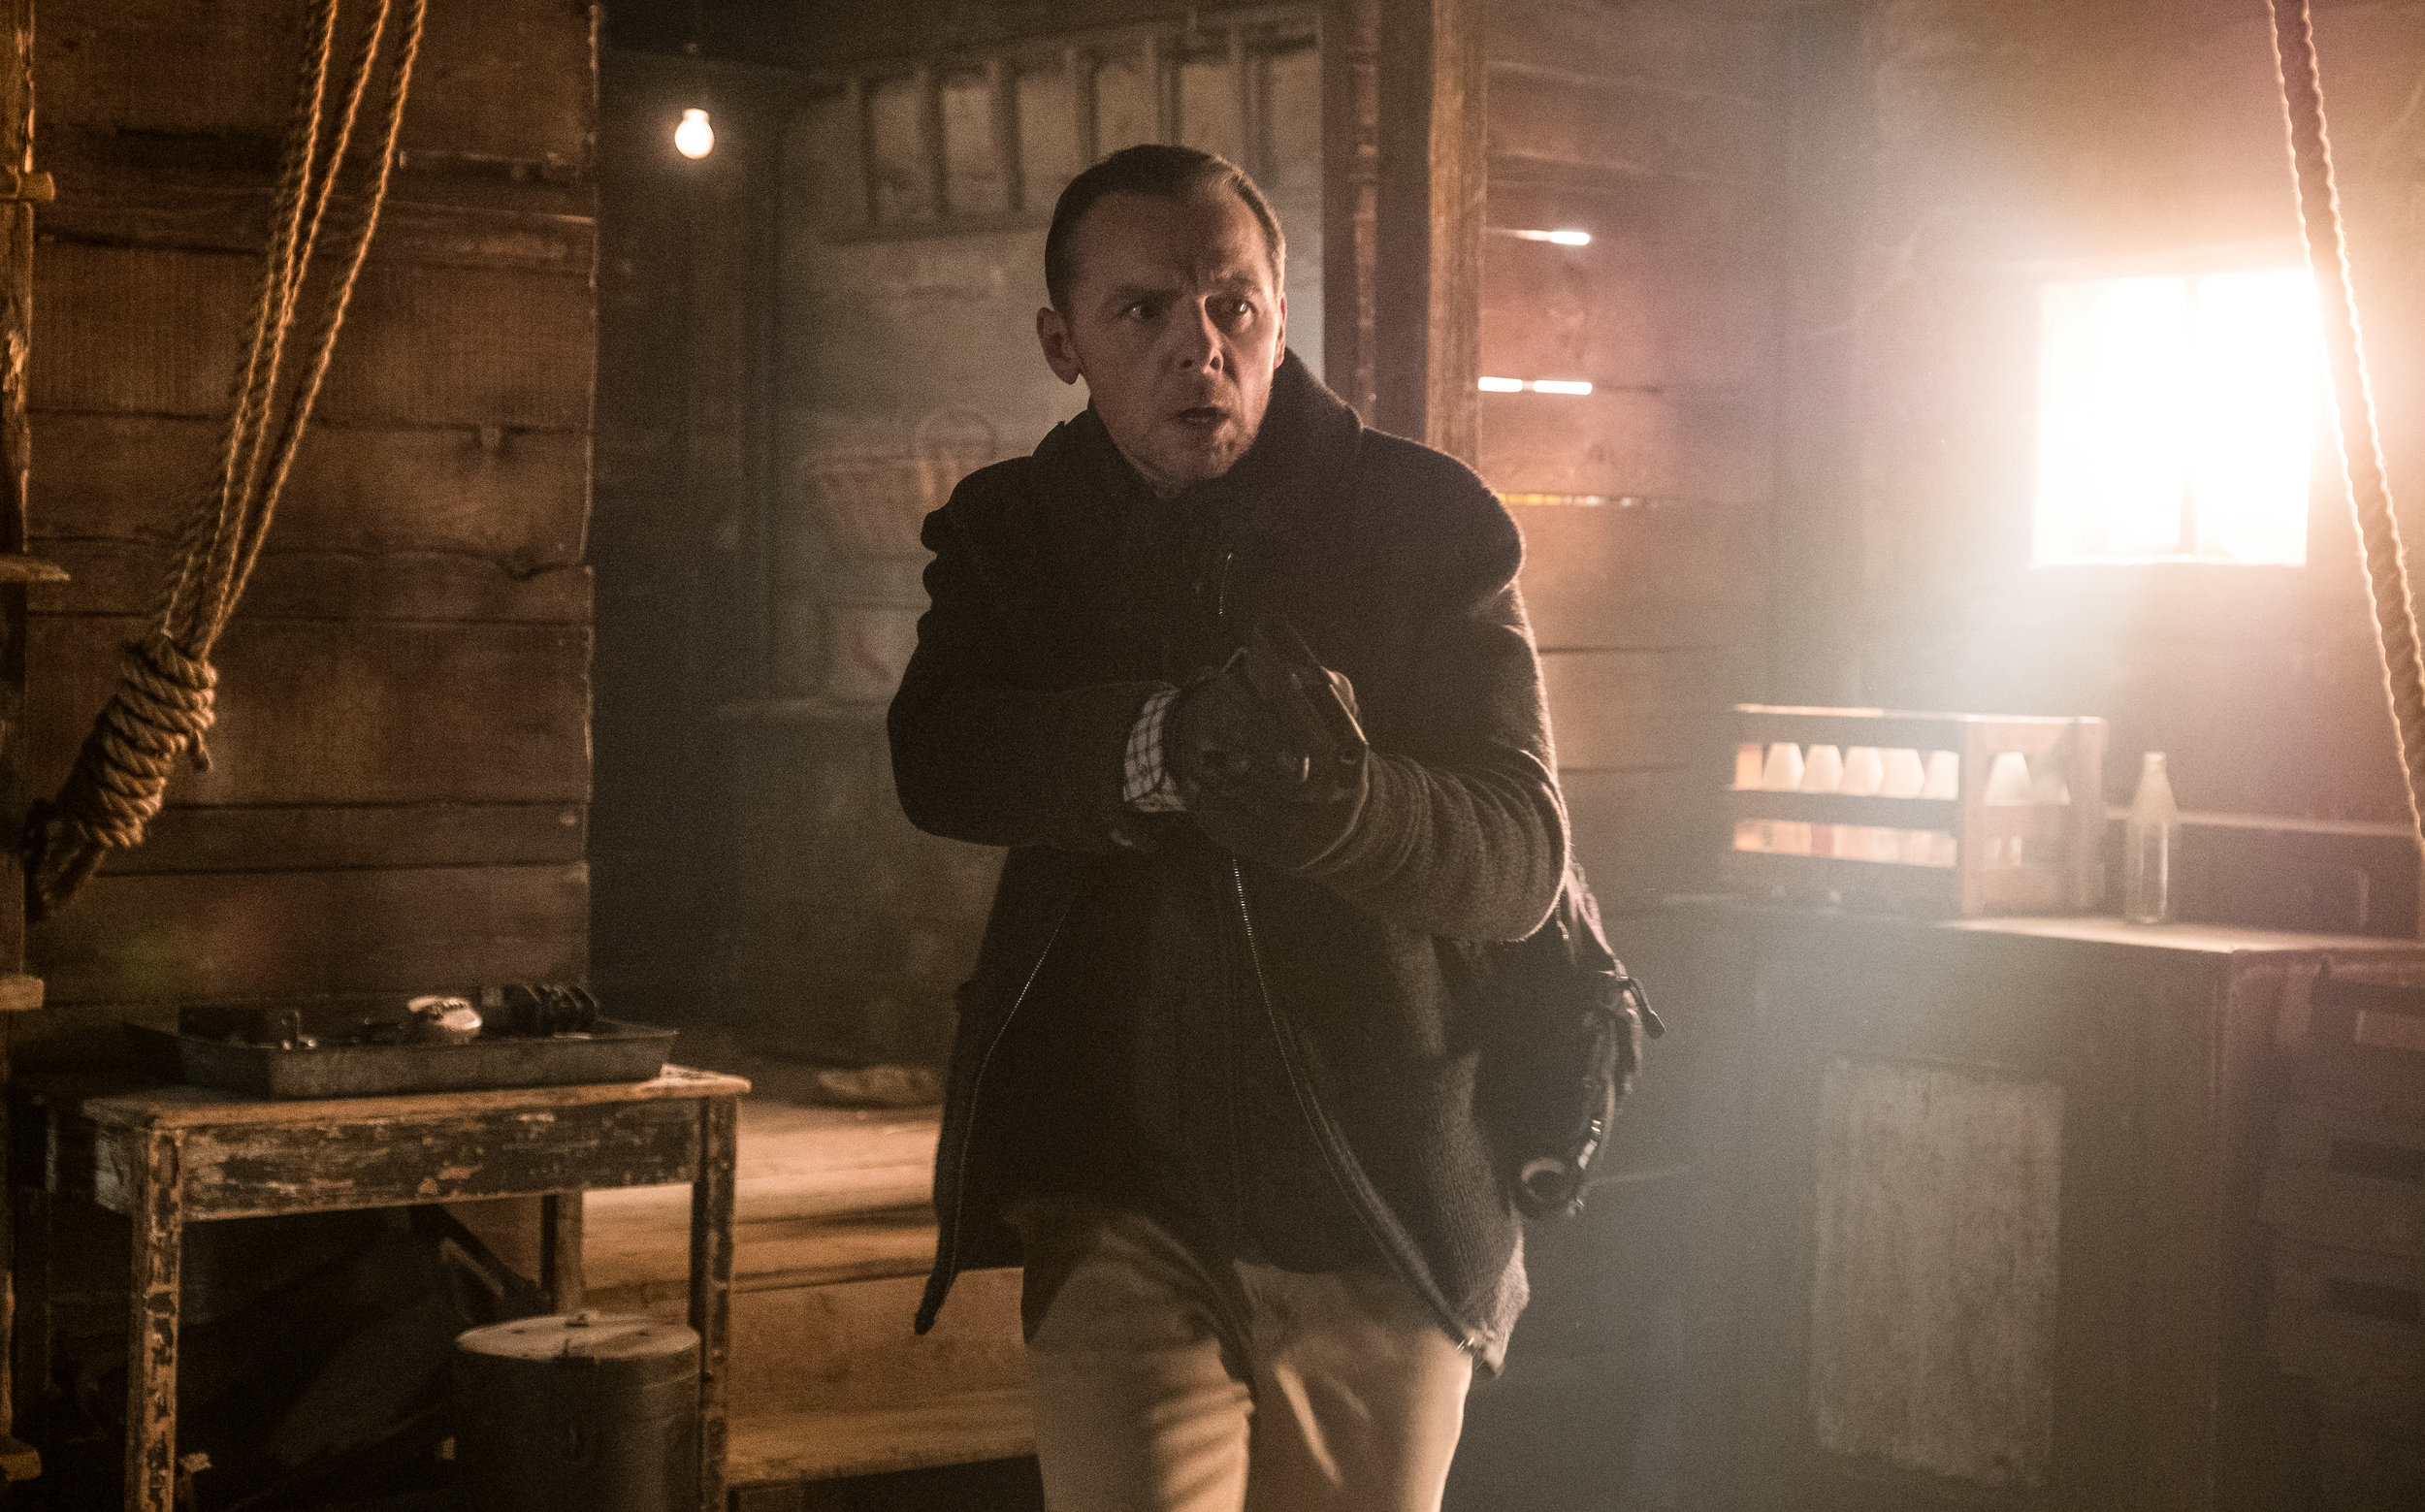 Simon Pegg had some action scenes of his own as Benji in Mission: Impossible - Fallout